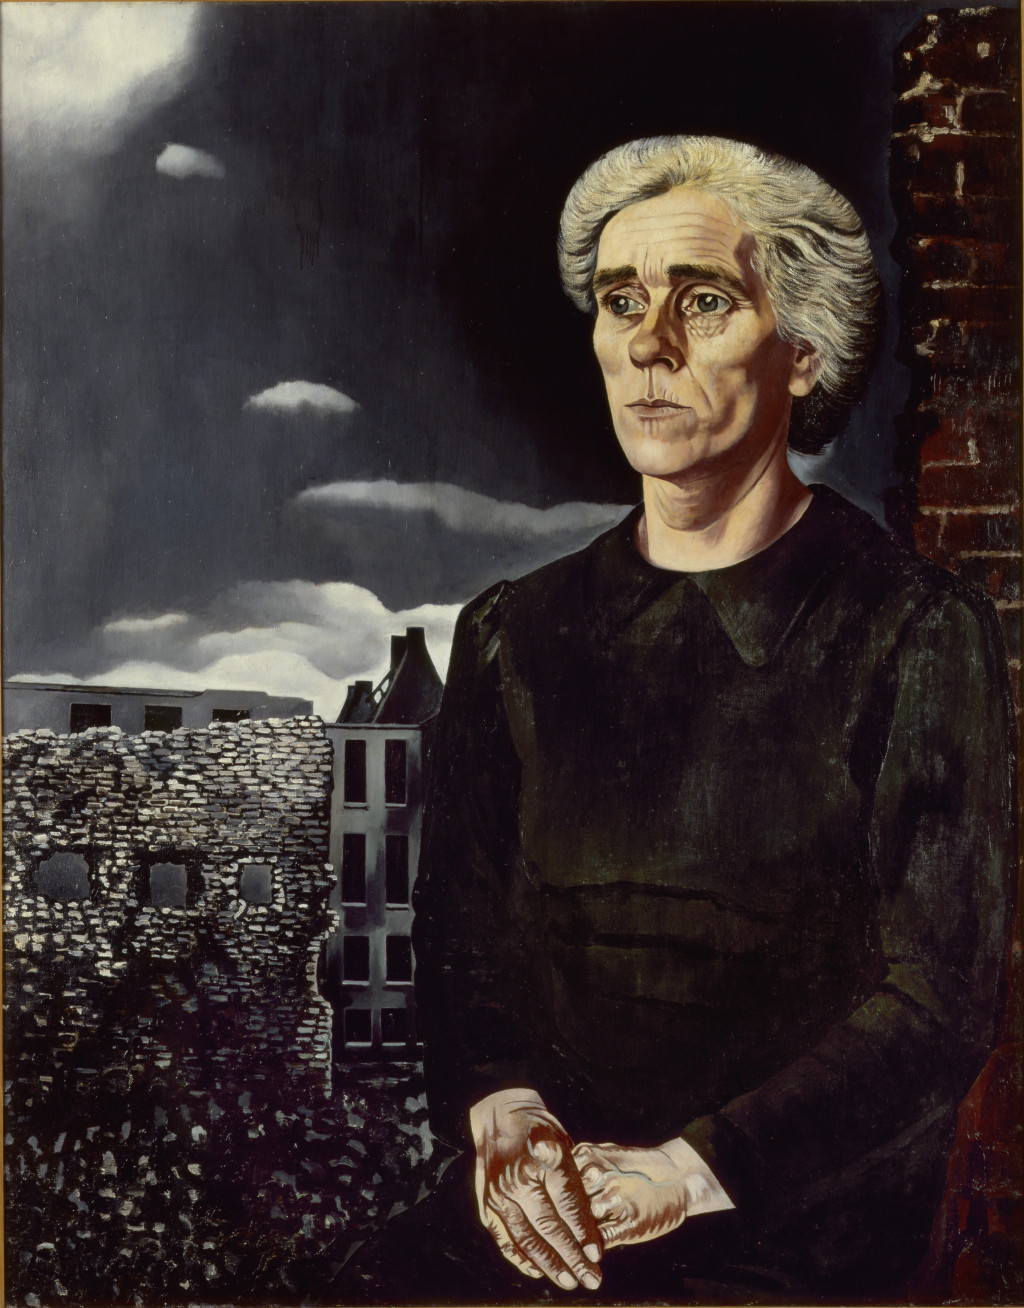 Charley Toorop, Arbeidersvrouw (Working-Class Woman), 1943. c/o Pictoright Amsterdam. Collection Stedelijk Museum Amsterdam